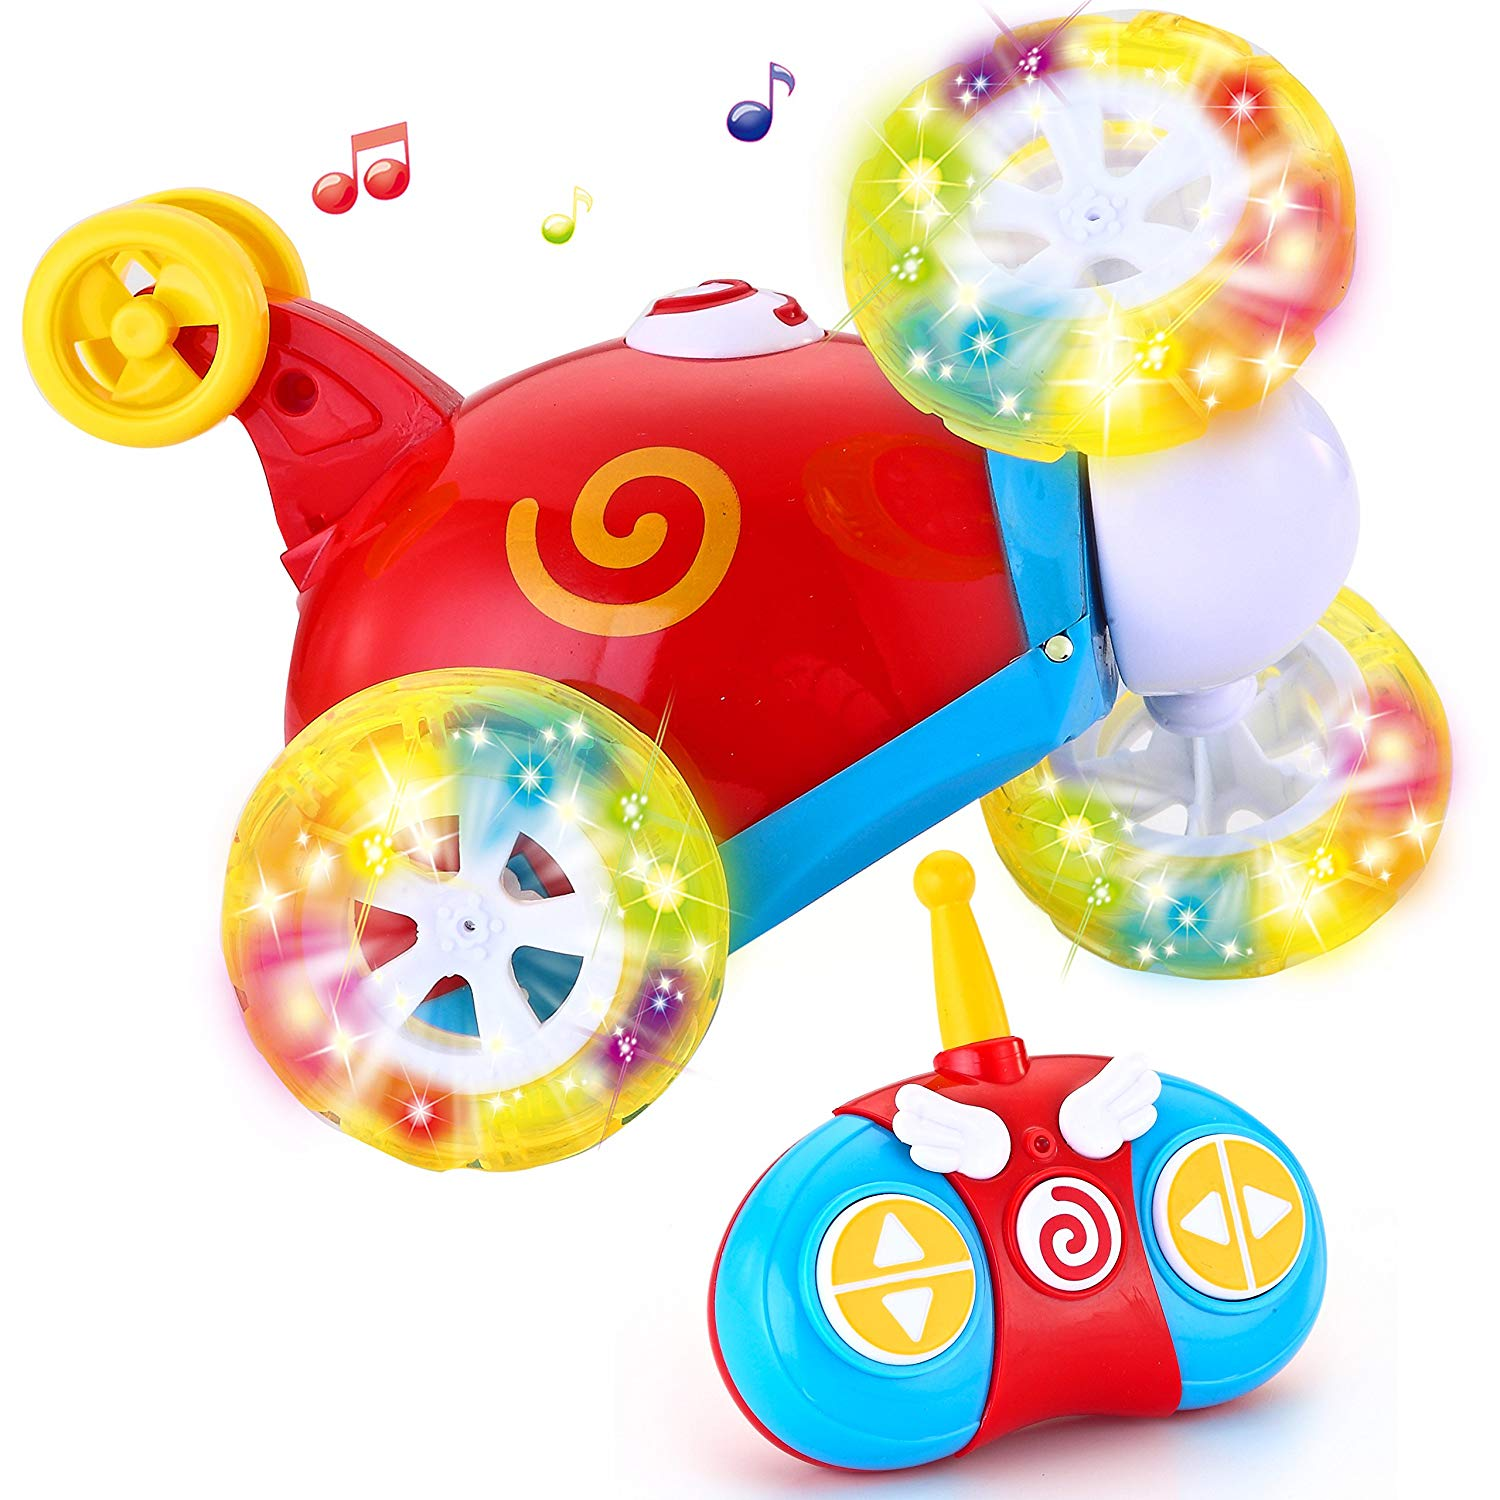 RC Radio Remote Control Cartoon Stunt Race Car for Toddlers